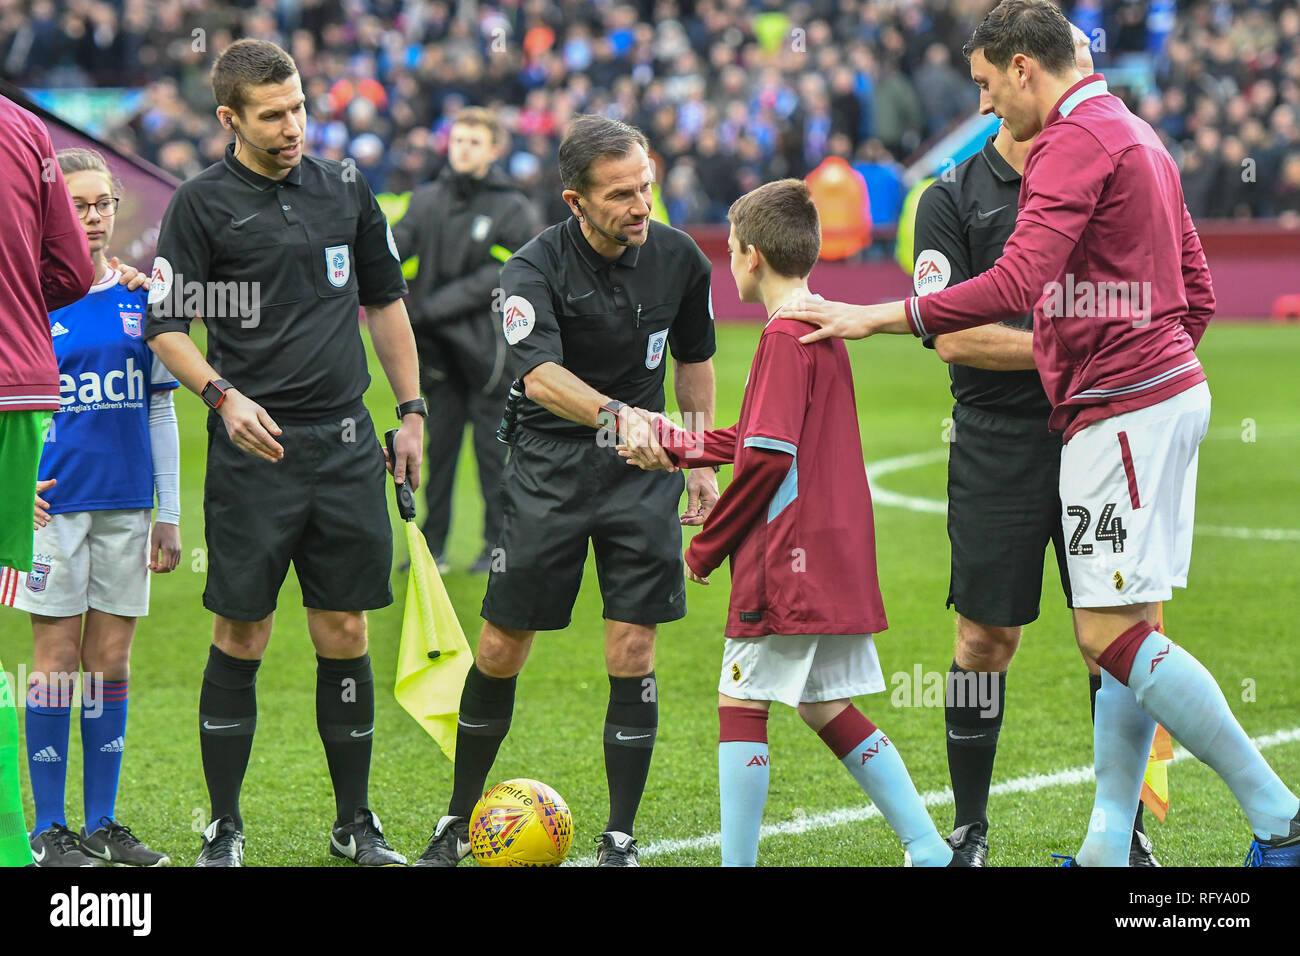 26th January, Villa Park, Birmingham, England ; Sky Bet Championship, Aston Villa vs Ipswich Town : Keith Stroud todays match official greets the home team.  Credit: Gareth Dalley/News Images  English Football League images are subject to DataCo Licence - Stock Image